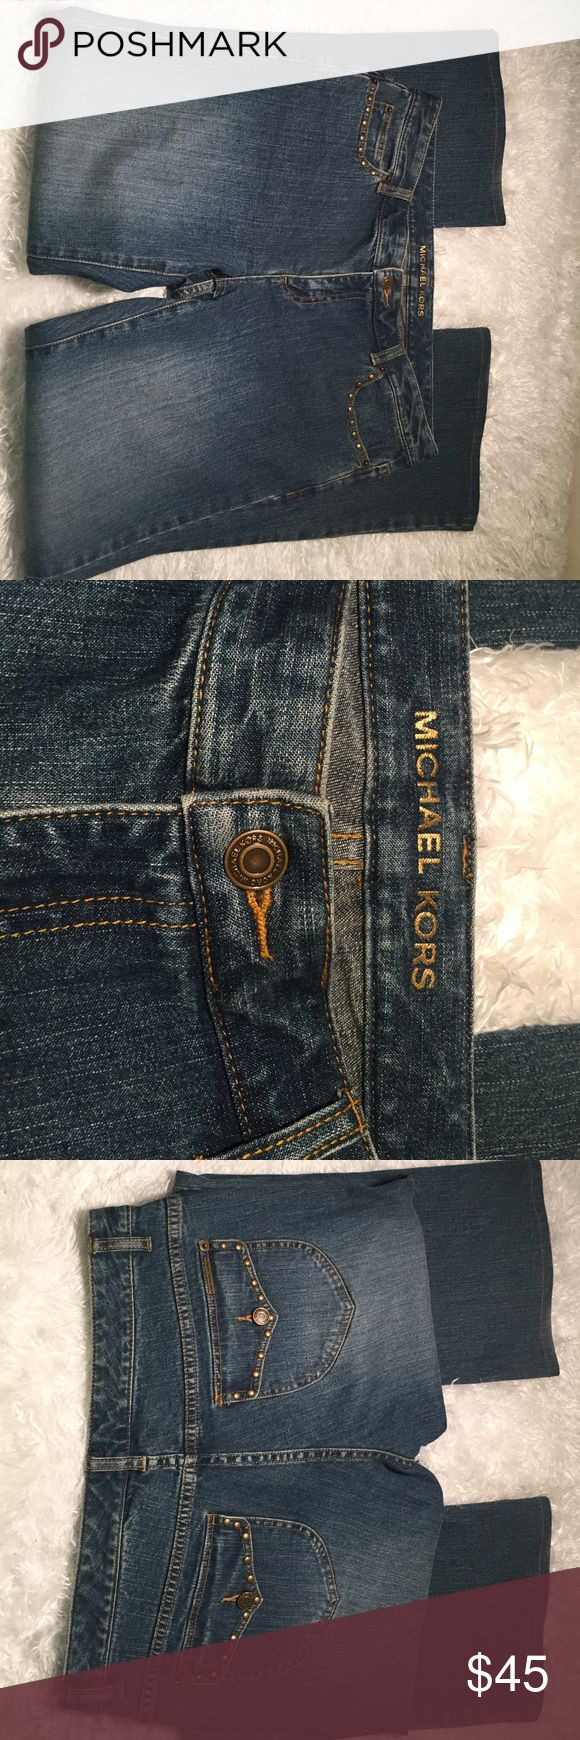 "Michael Kors Women's Flare Jeans - Size 10 Wow!!! These are great jeans!  Michael Kors does not disappoint with the quality in these jeans.  Size - 10 / Inseam - 30.5"" Michael Kors Jeans Flare & Wide Leg"